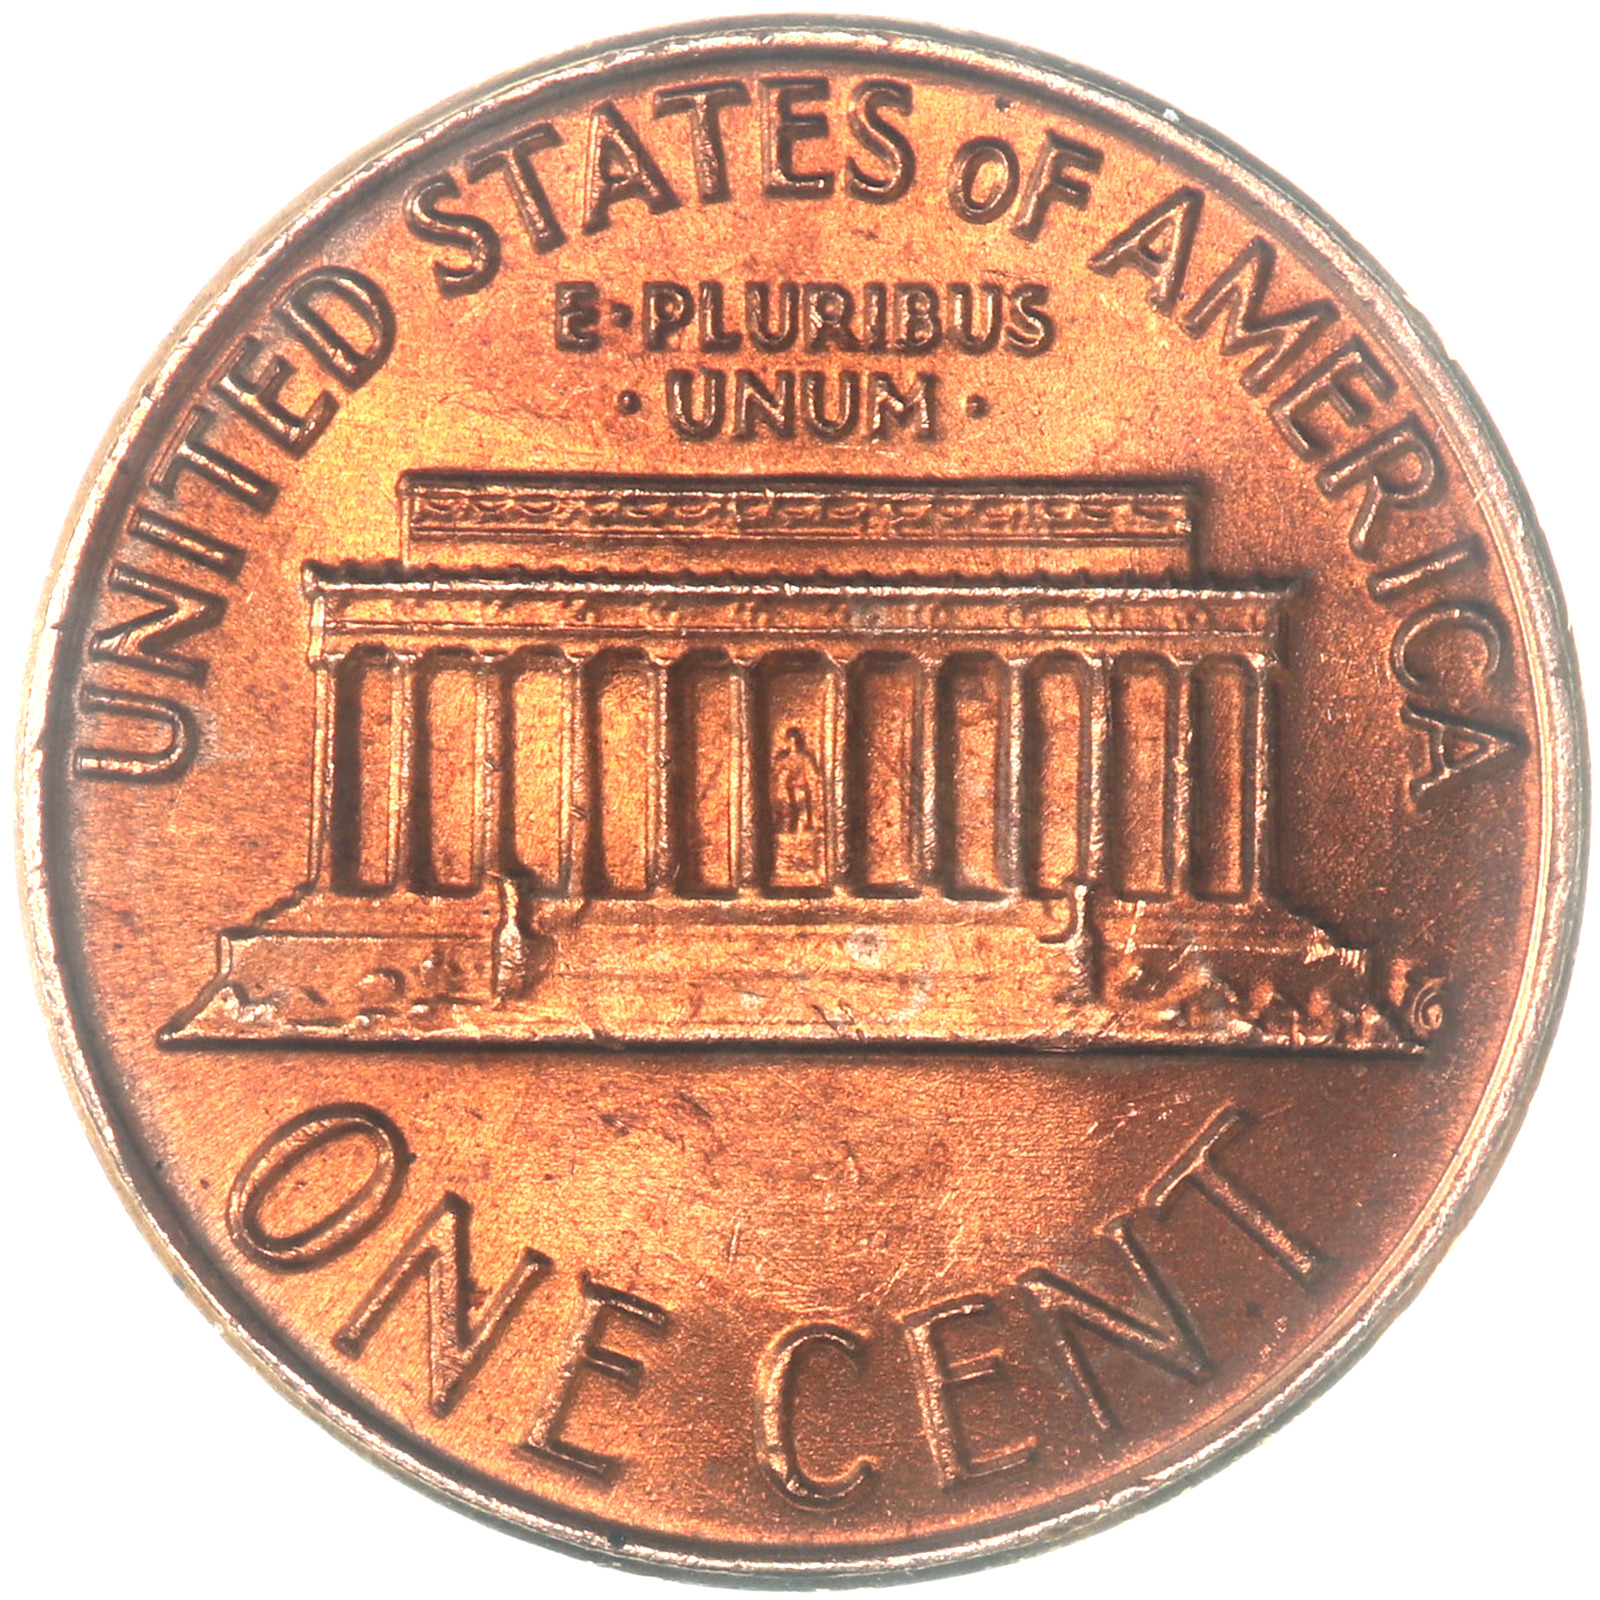 1978 Lincoln Memorial Cent Choice BU Penny US Coin 2